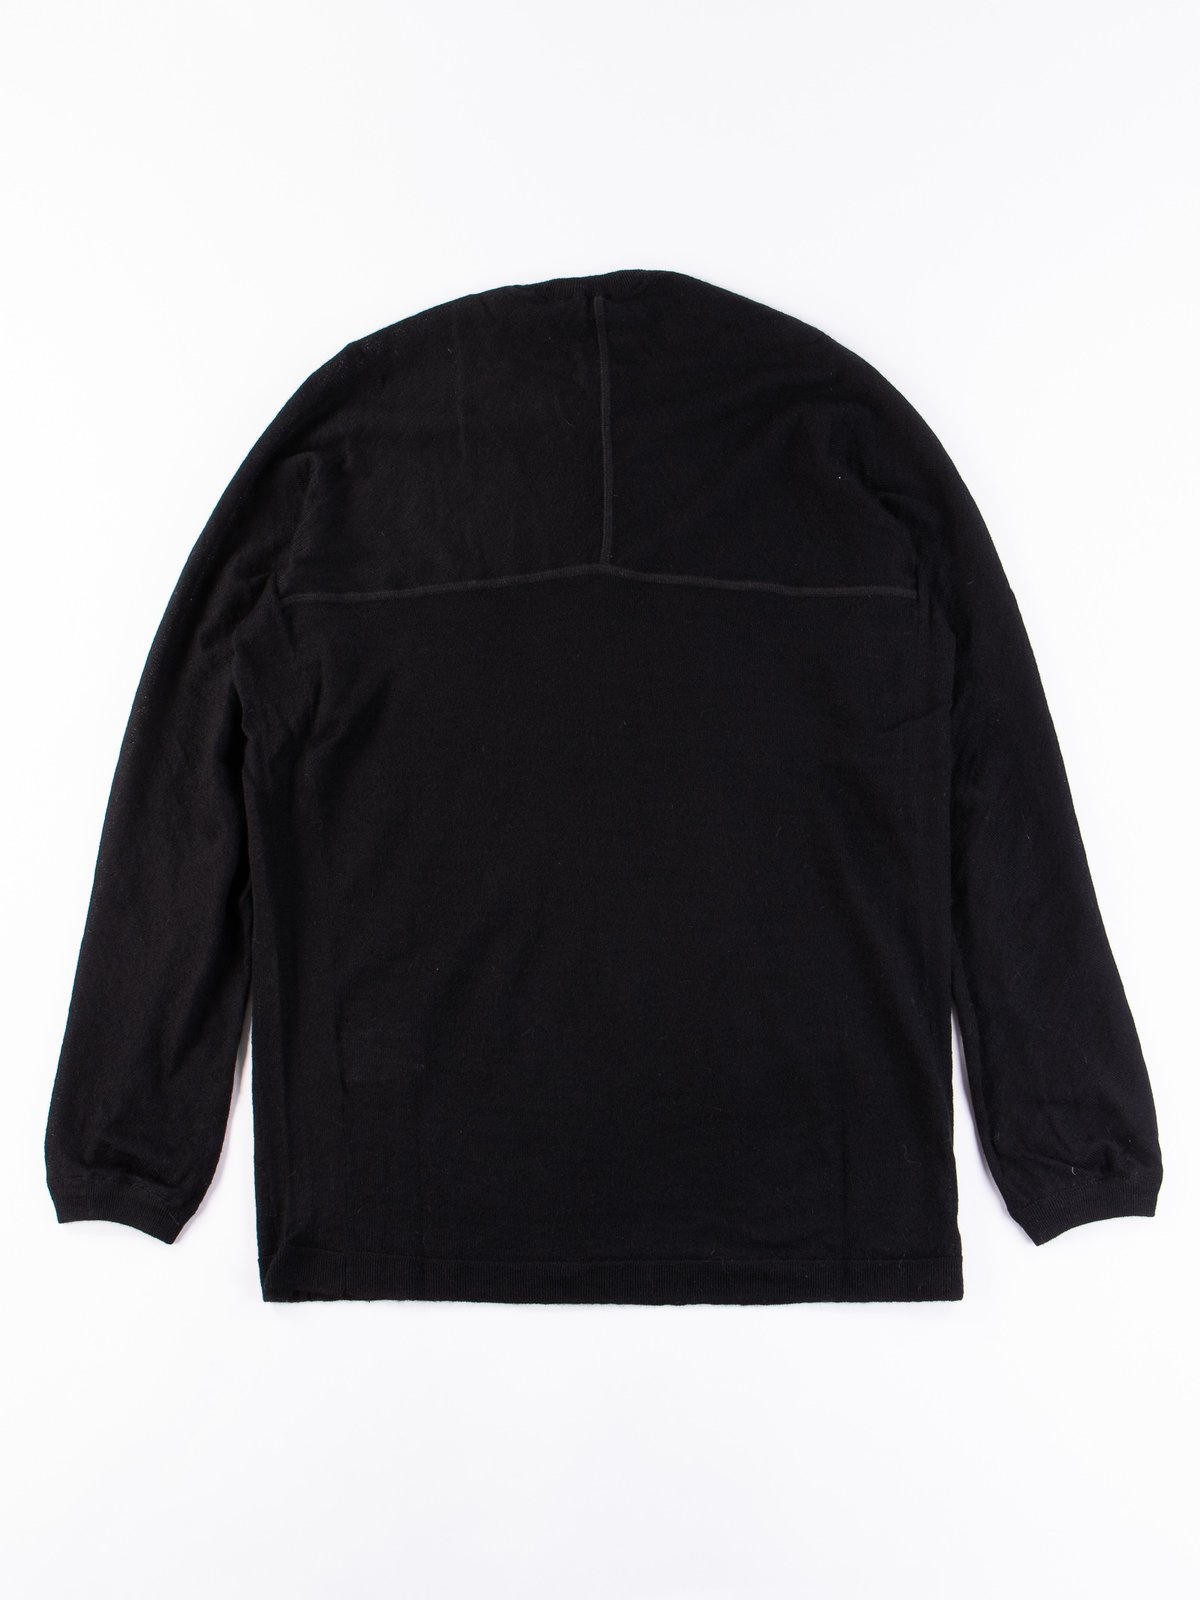 S23–AK Black Cashllama Long Sleeve Sweater - Image 4